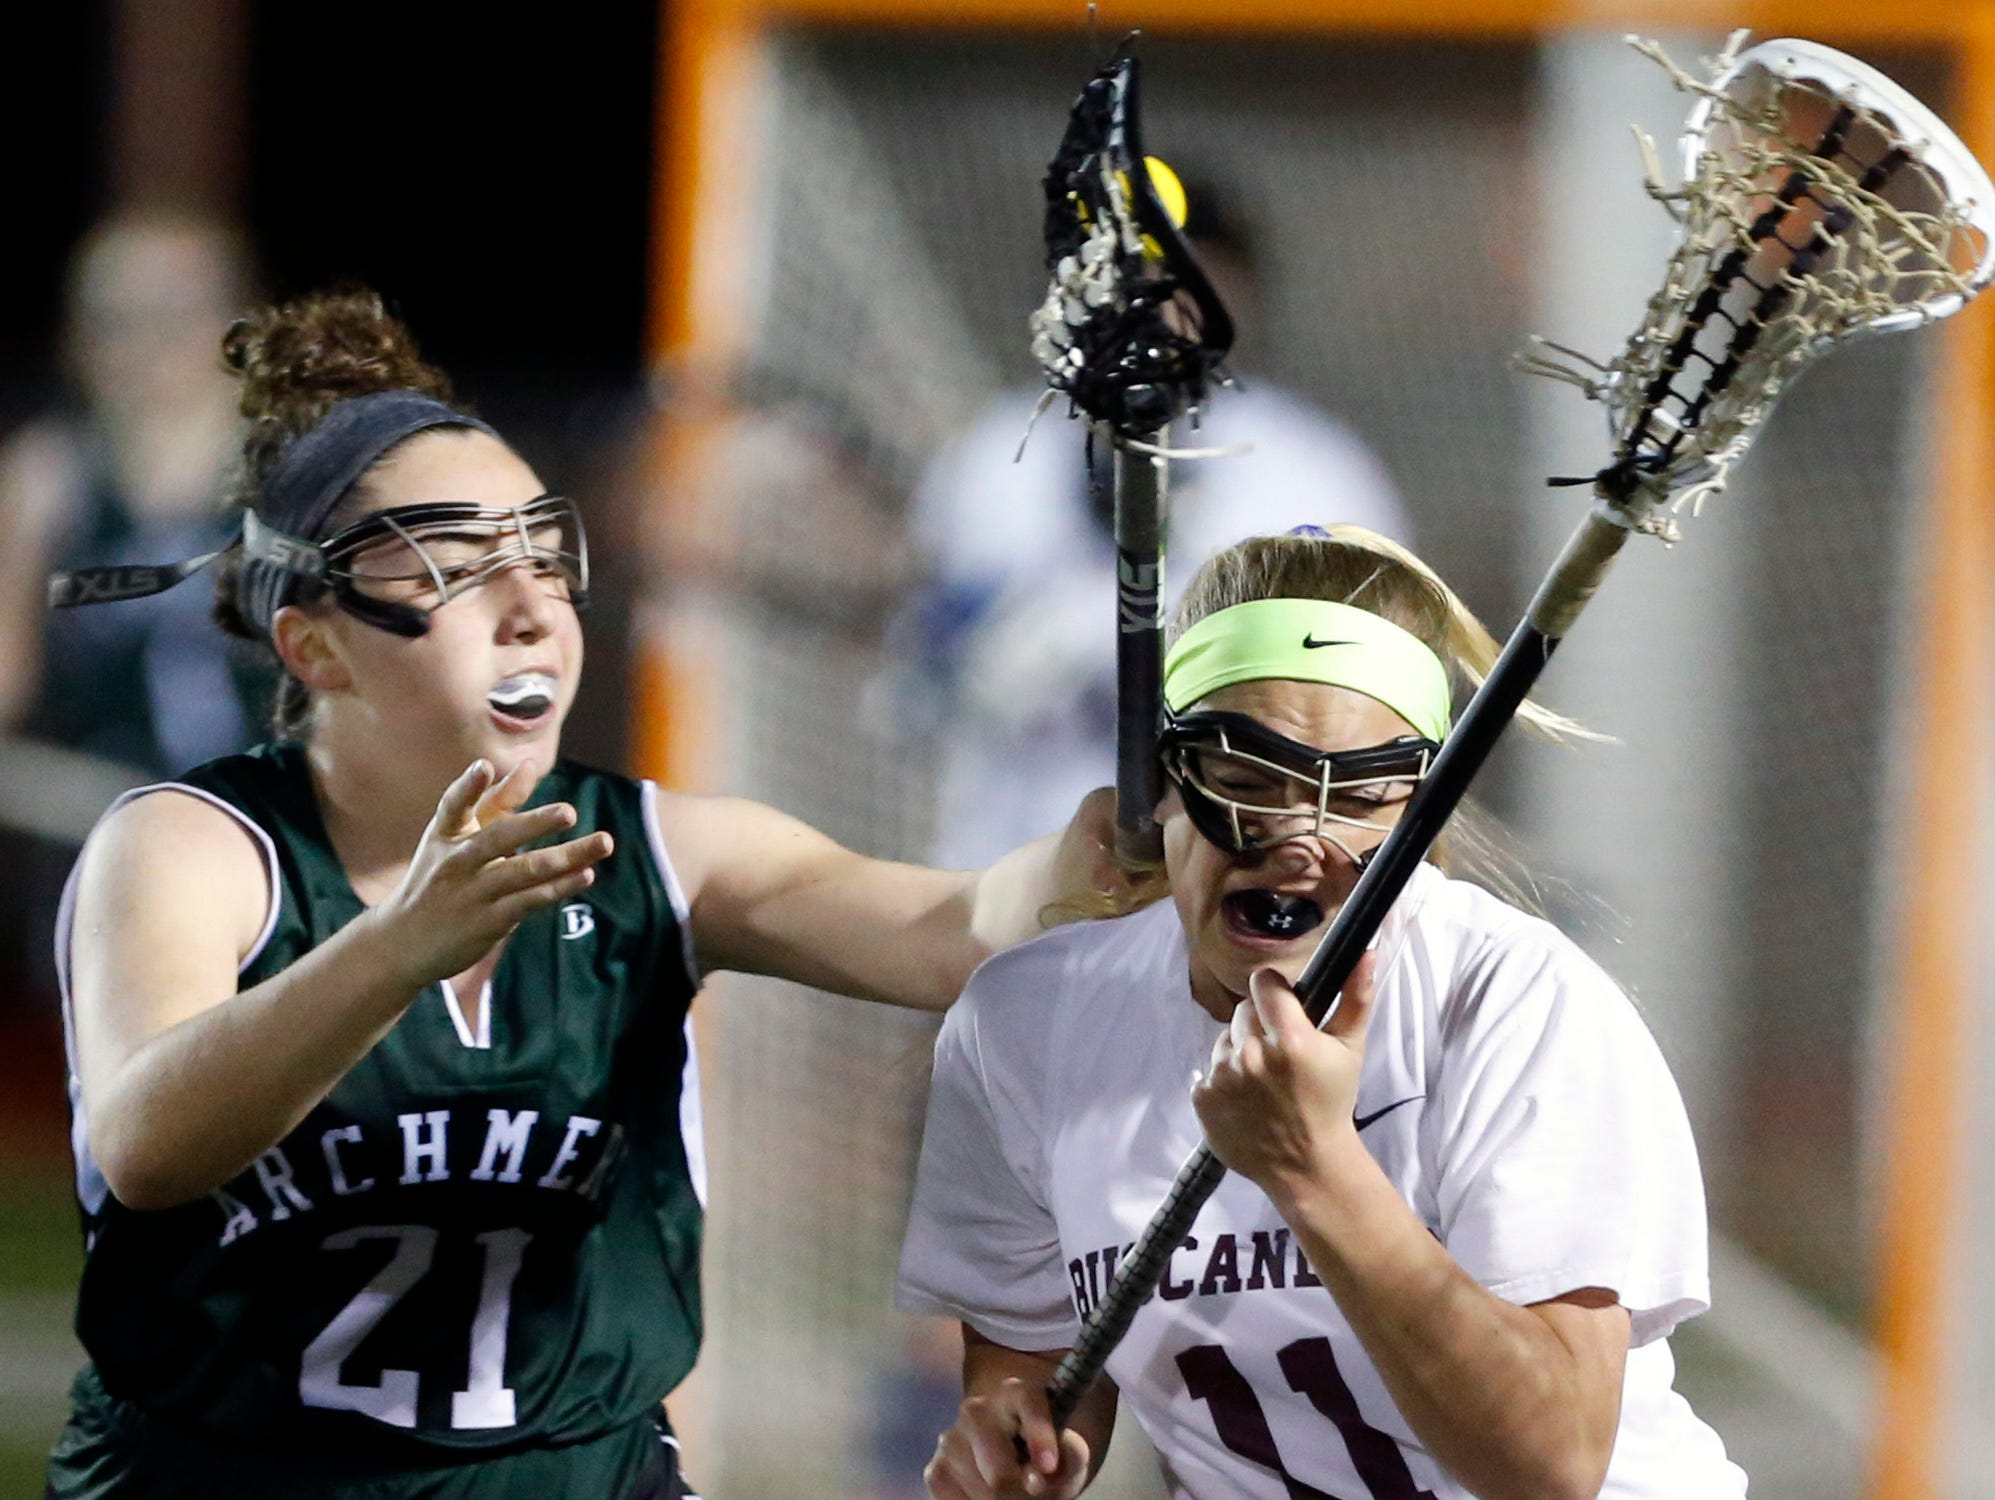 Archmere's Olivia Baldi gets the ball but also contacts Caravel's Lauren Phillips on a stick check in the second half of Caravel's home win, 11-9.